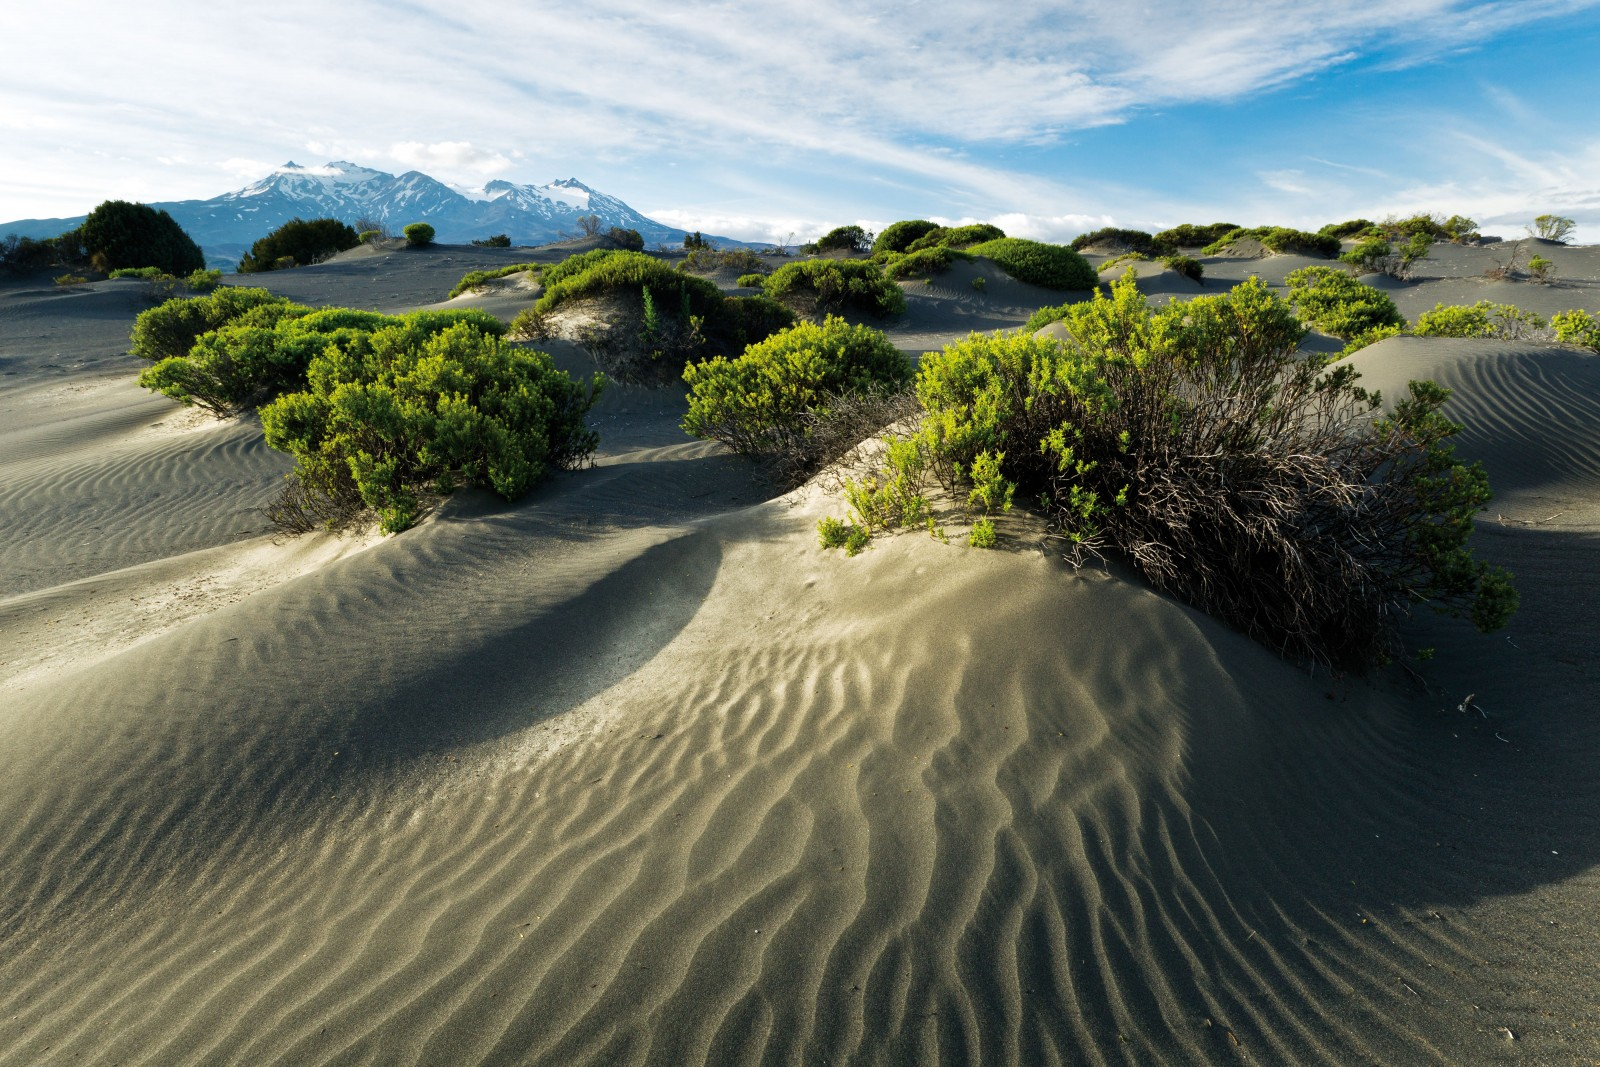 Ruapehu hebe live a precarious existence riding the shifting dunes. The bushy crop traps sand and helps to create and stabilise the dunes, but strong wind can still strip their root systems of any trace of soil and eventually kill them.